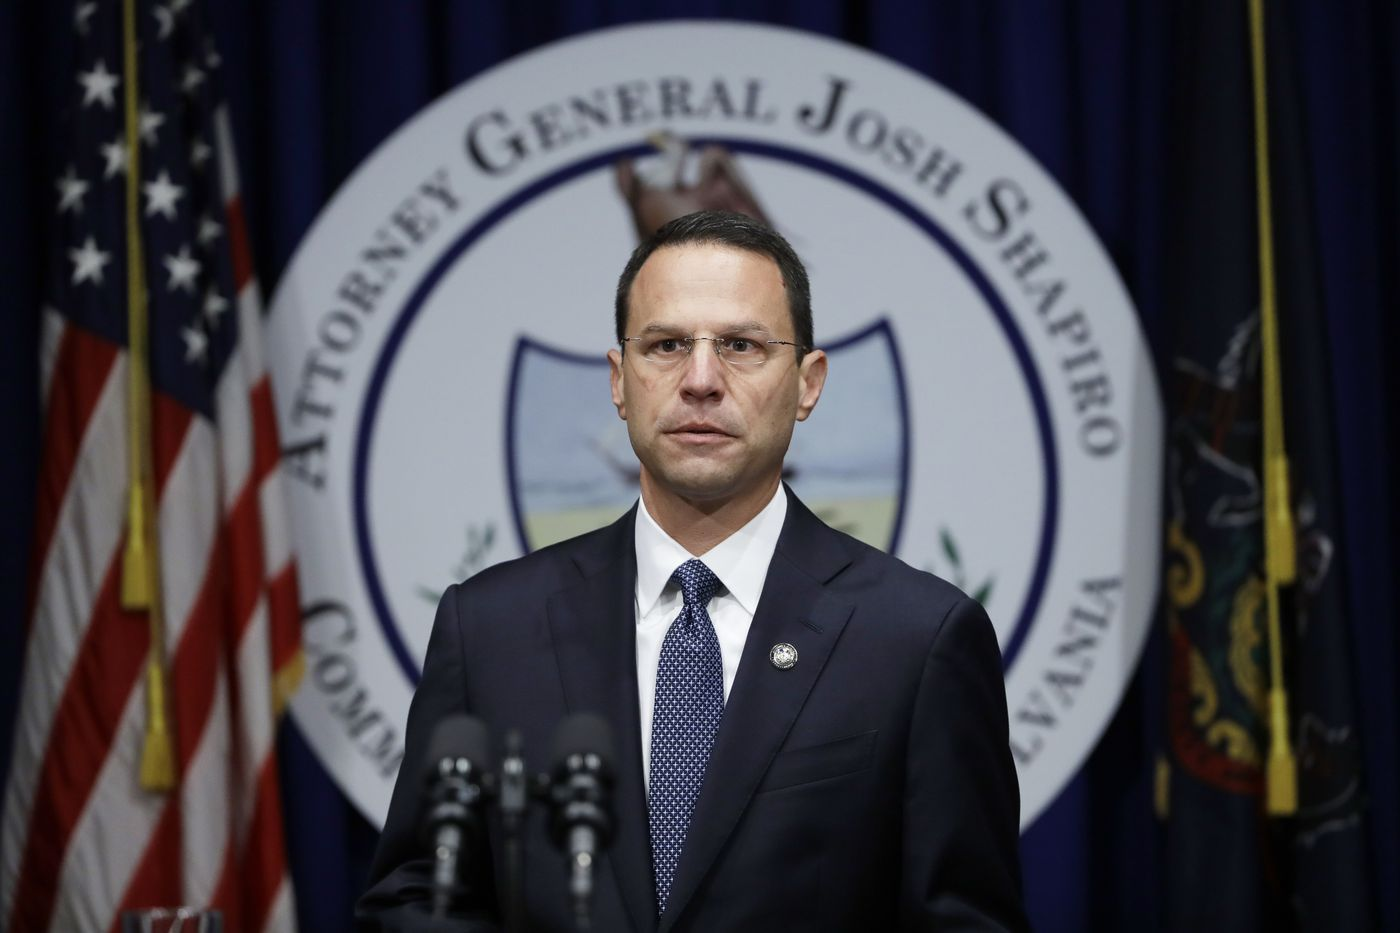 Missouri becomes first state to announce investigation into alleged church abuses after Pennsylvania report